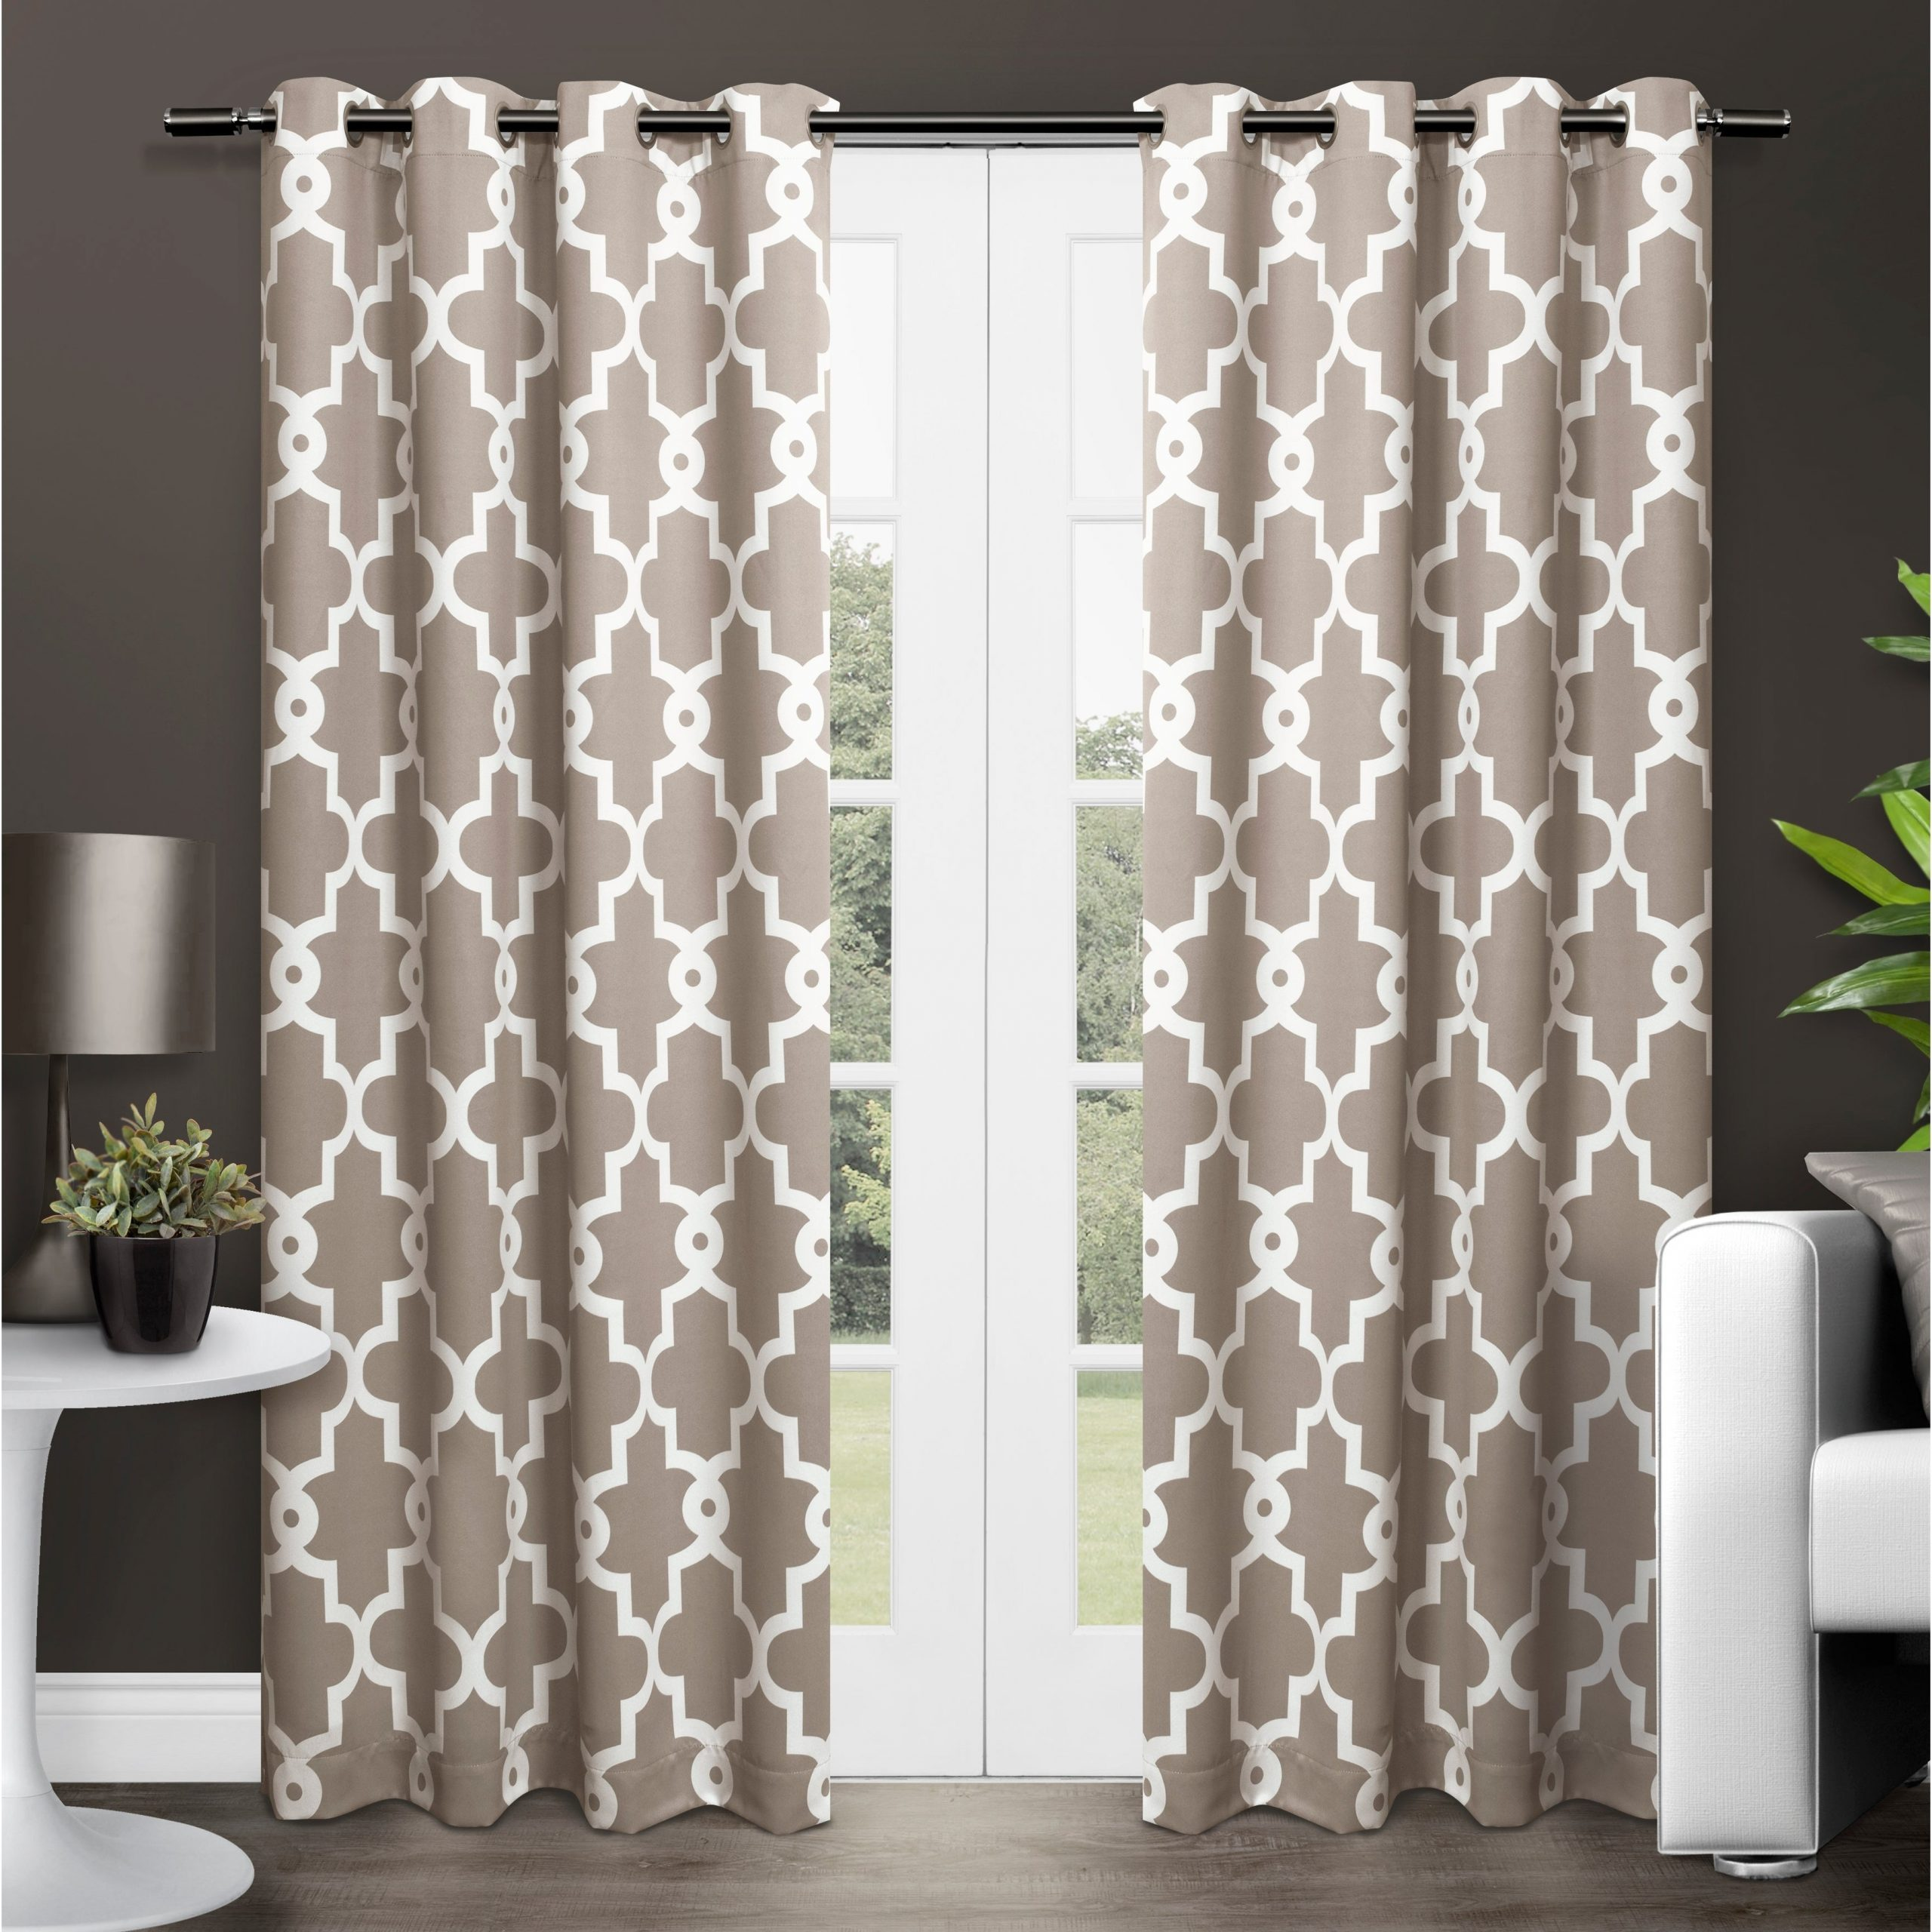 Well Known The Curated Nomad Duane Jacquard Grommet Top Curtain Panel Pairs With Regard To The Curated Nomad Duane Blackout Curtain Panel Pair (View 21 of 21)